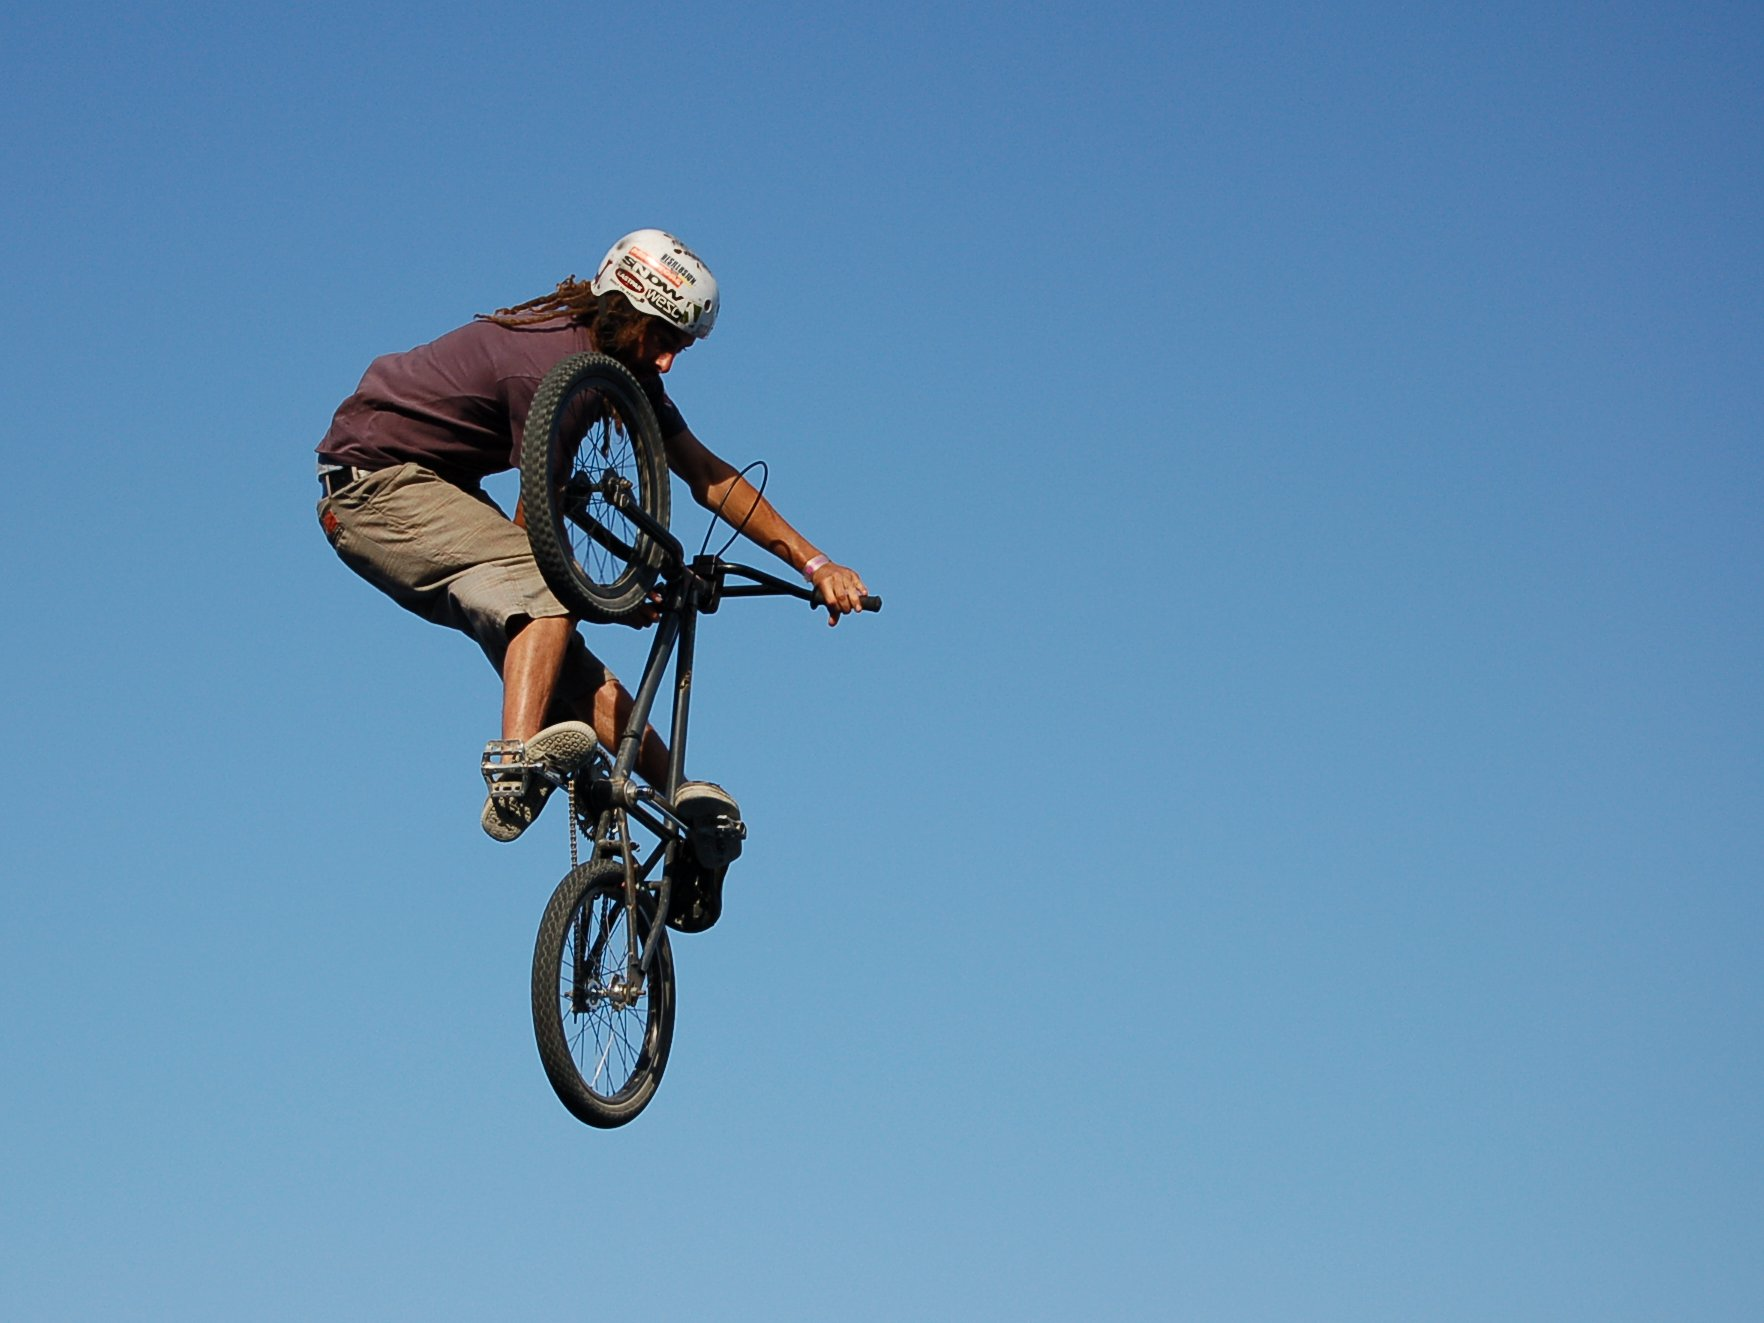 nokia fise 2007   roller street  bmx rampe  wakeboard and